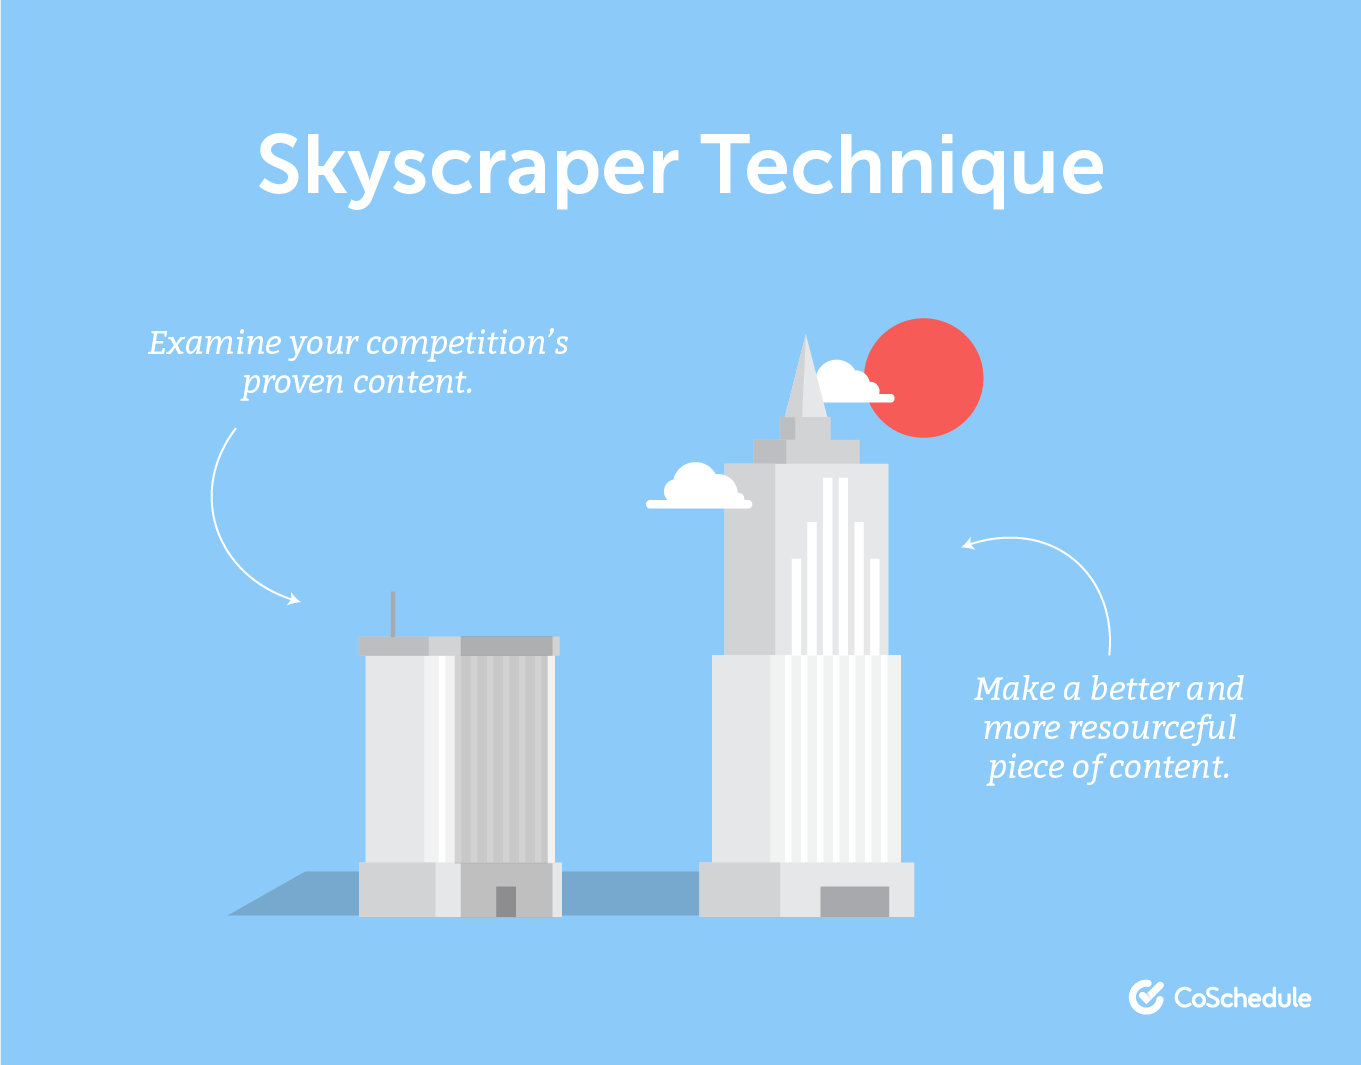 Skyscraper technique for inbound marketing